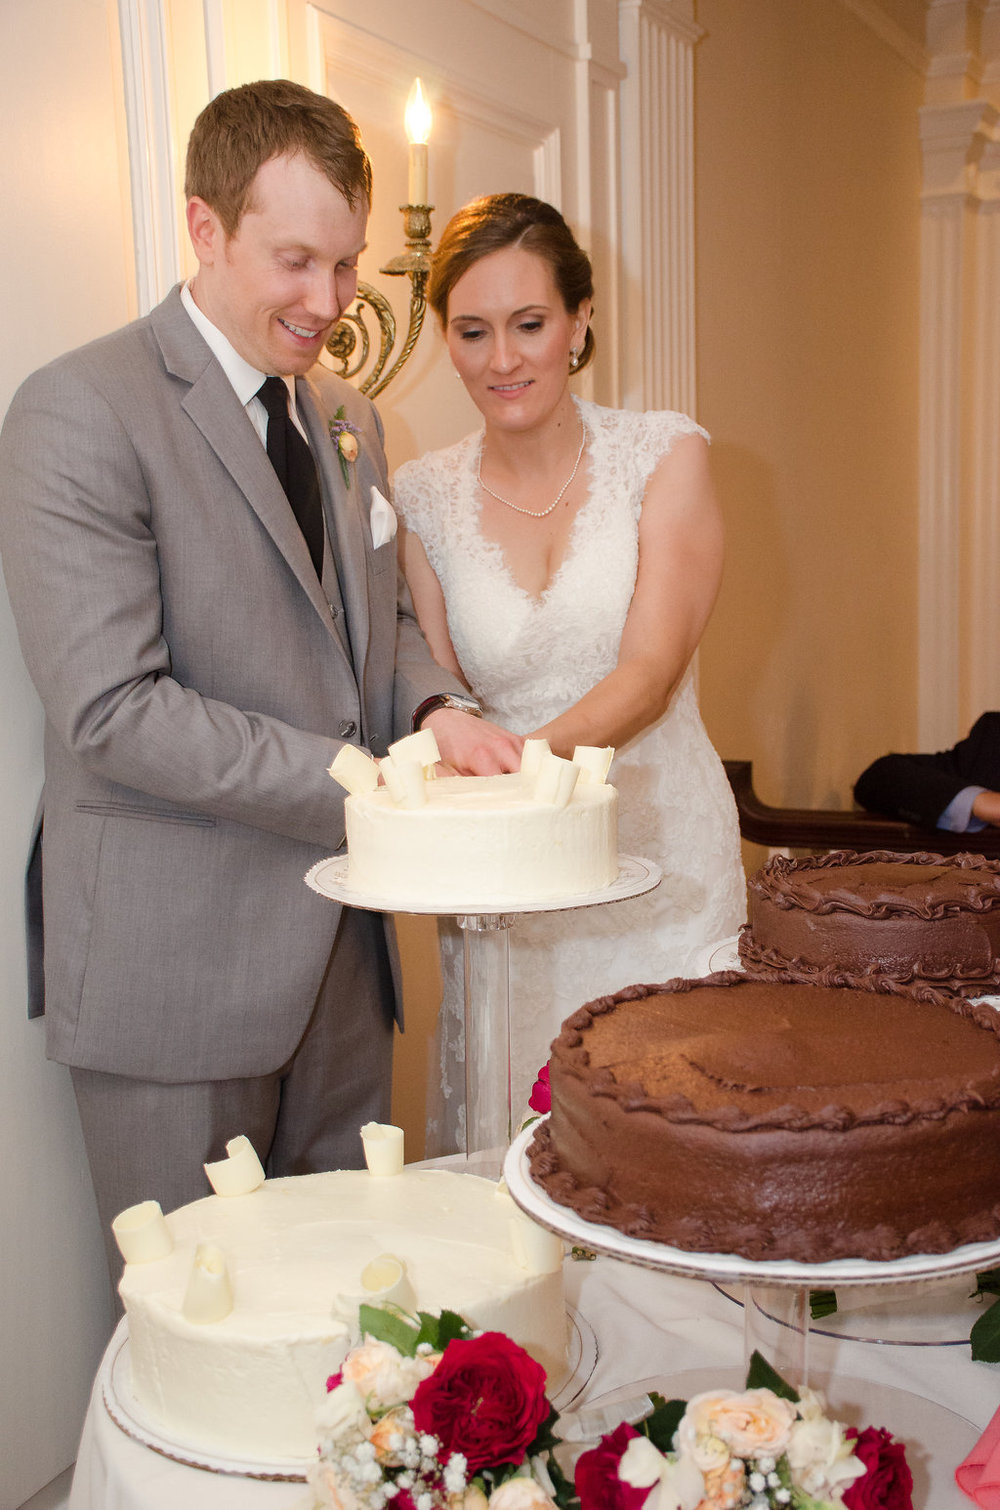 Whitehall Estate and Winery Wedding bride and groom cutting cake Photo